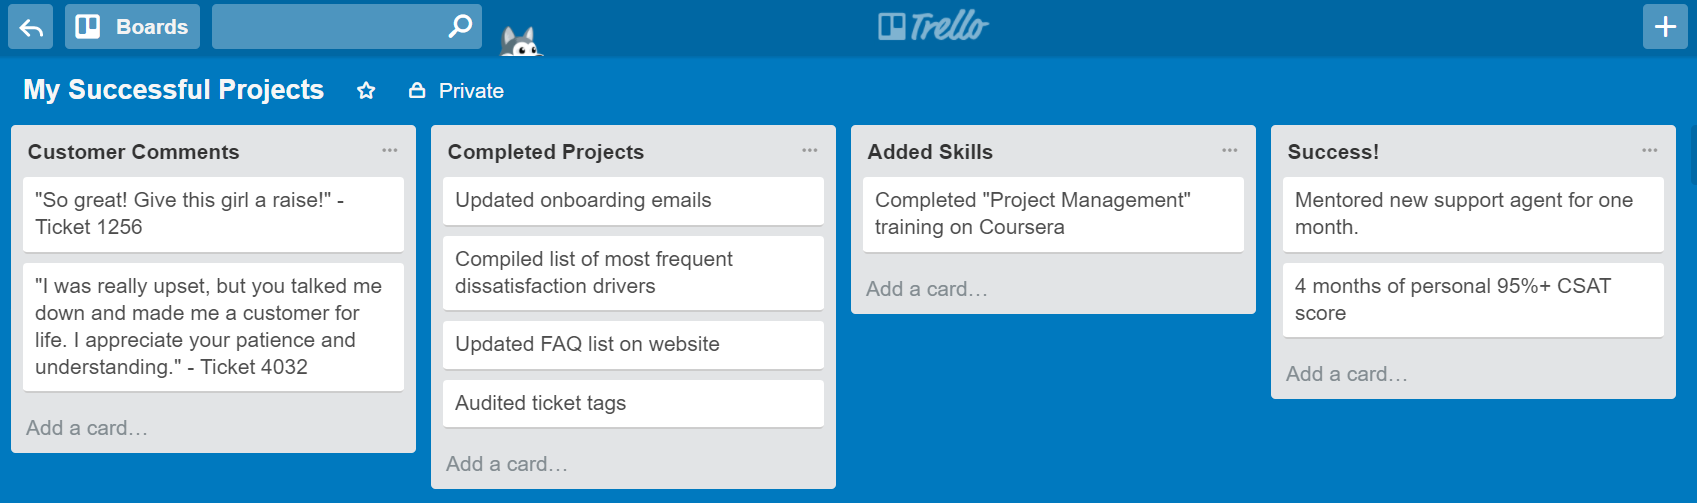 How to ask for a raise: Success Board in Trello